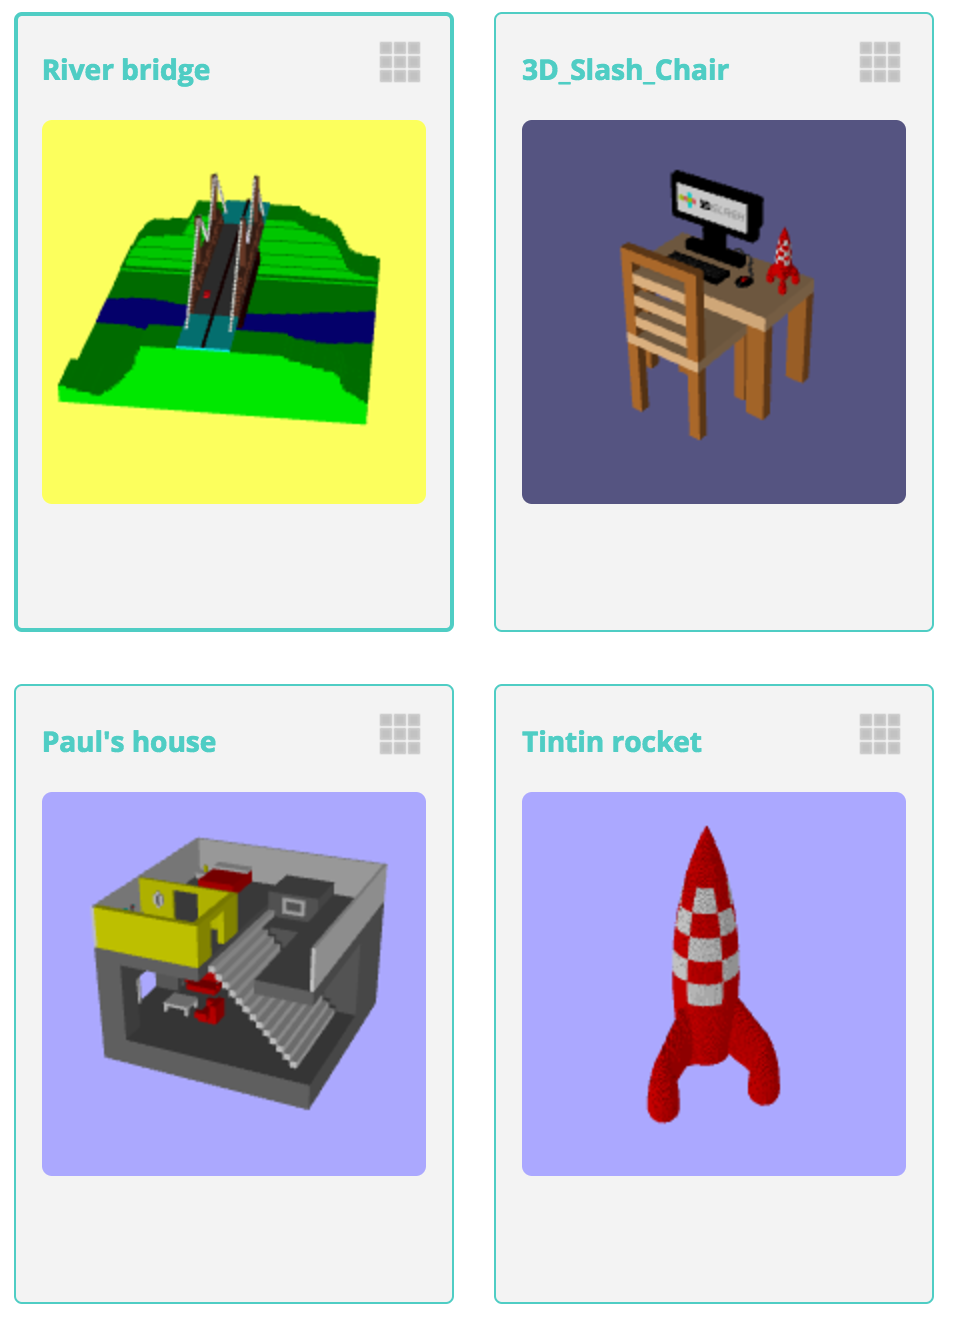 10 Open-Source and Free CAD Software You Can Download Right Now